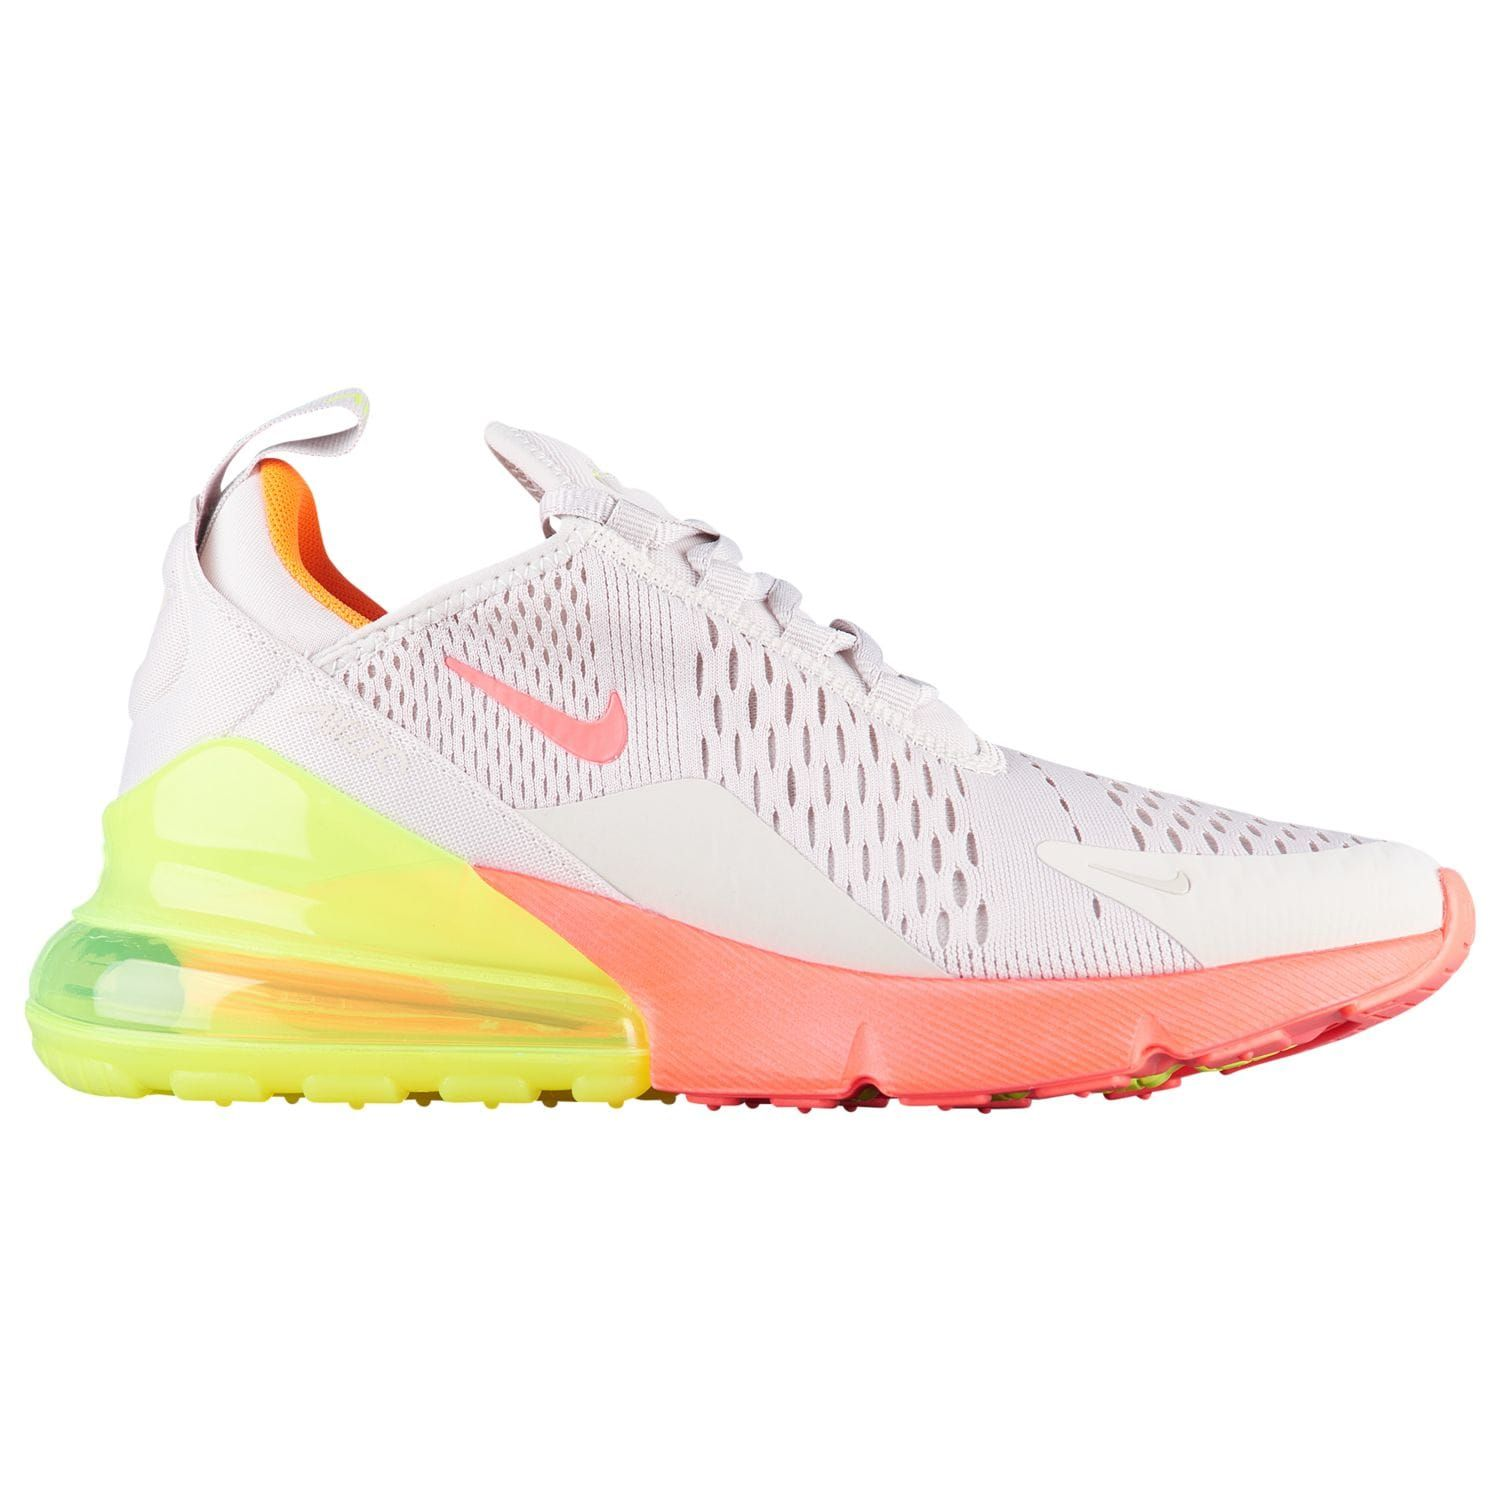 Nike Air Max 270 - Women s - Running - Shoes - Desert Sand Hot  Punch Volt Total Orange 16c642d839b5